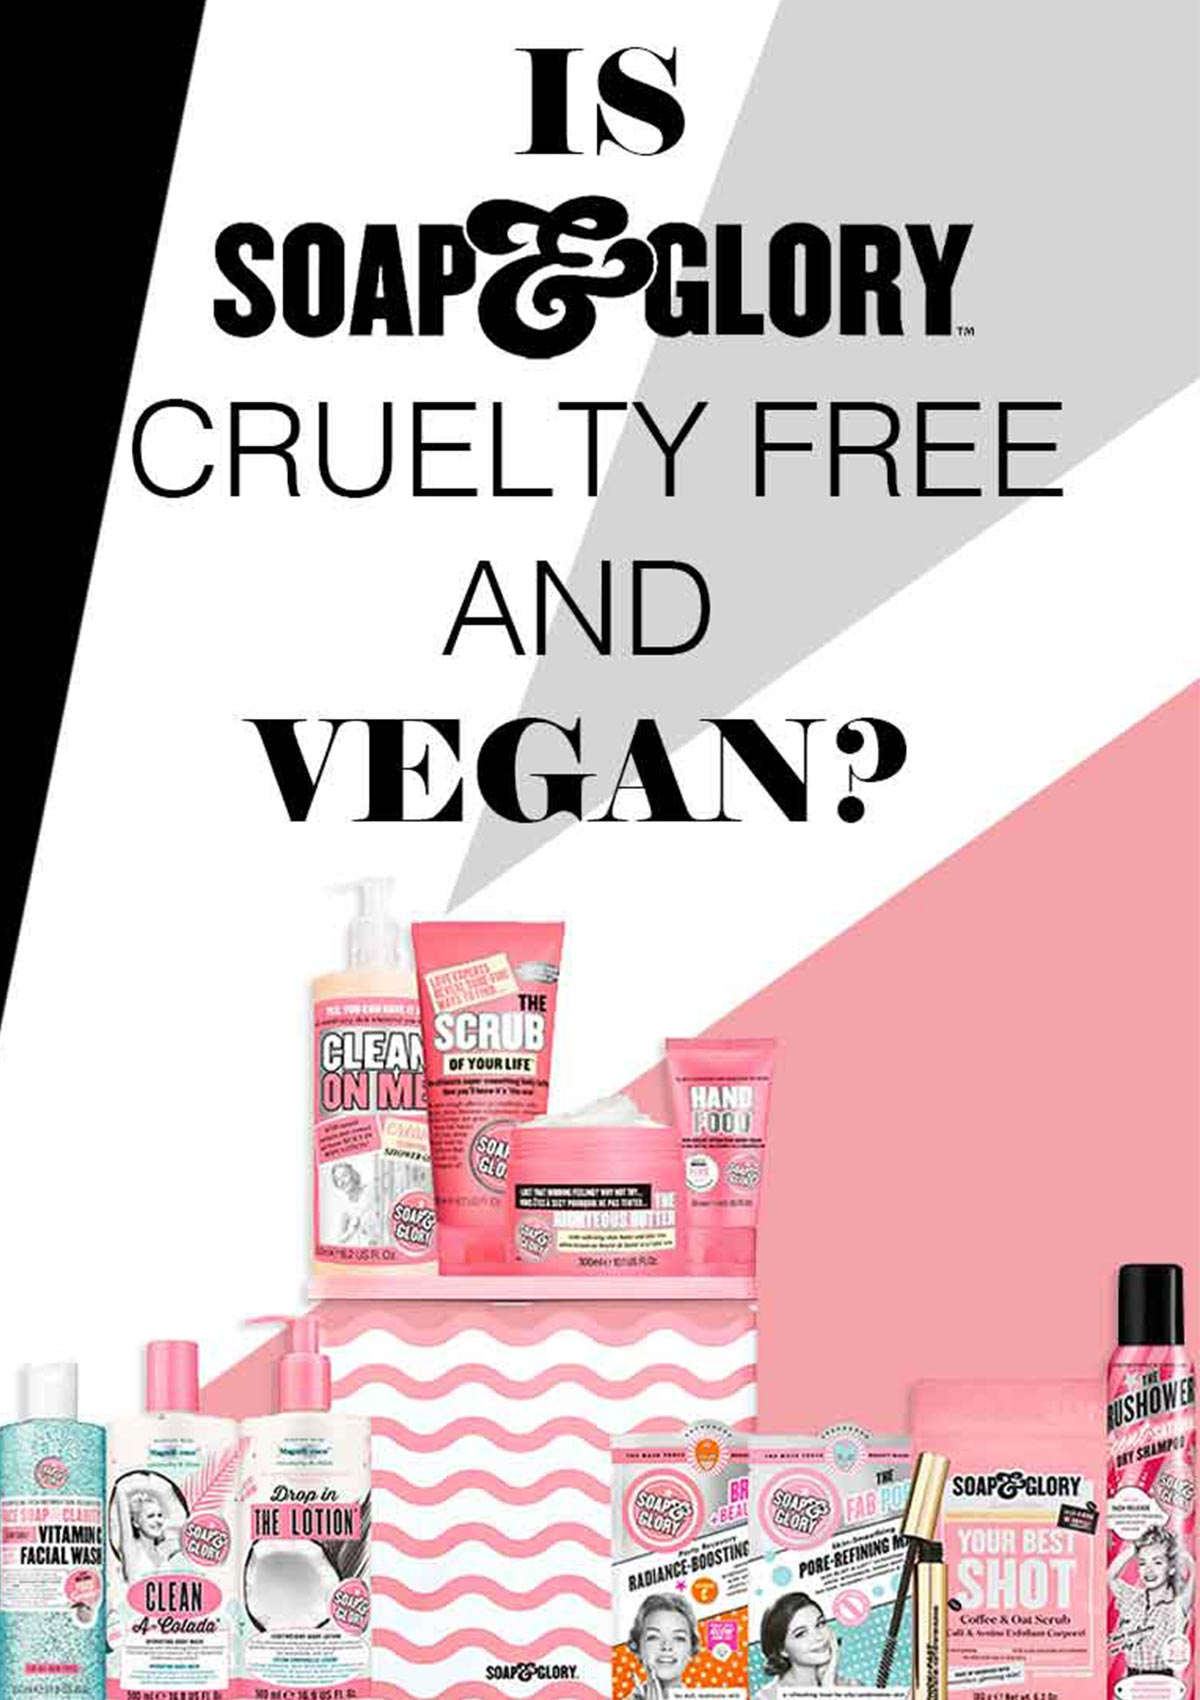 IS SOAP AND GLORY CRUELTY-FREE AND VEGAN banner